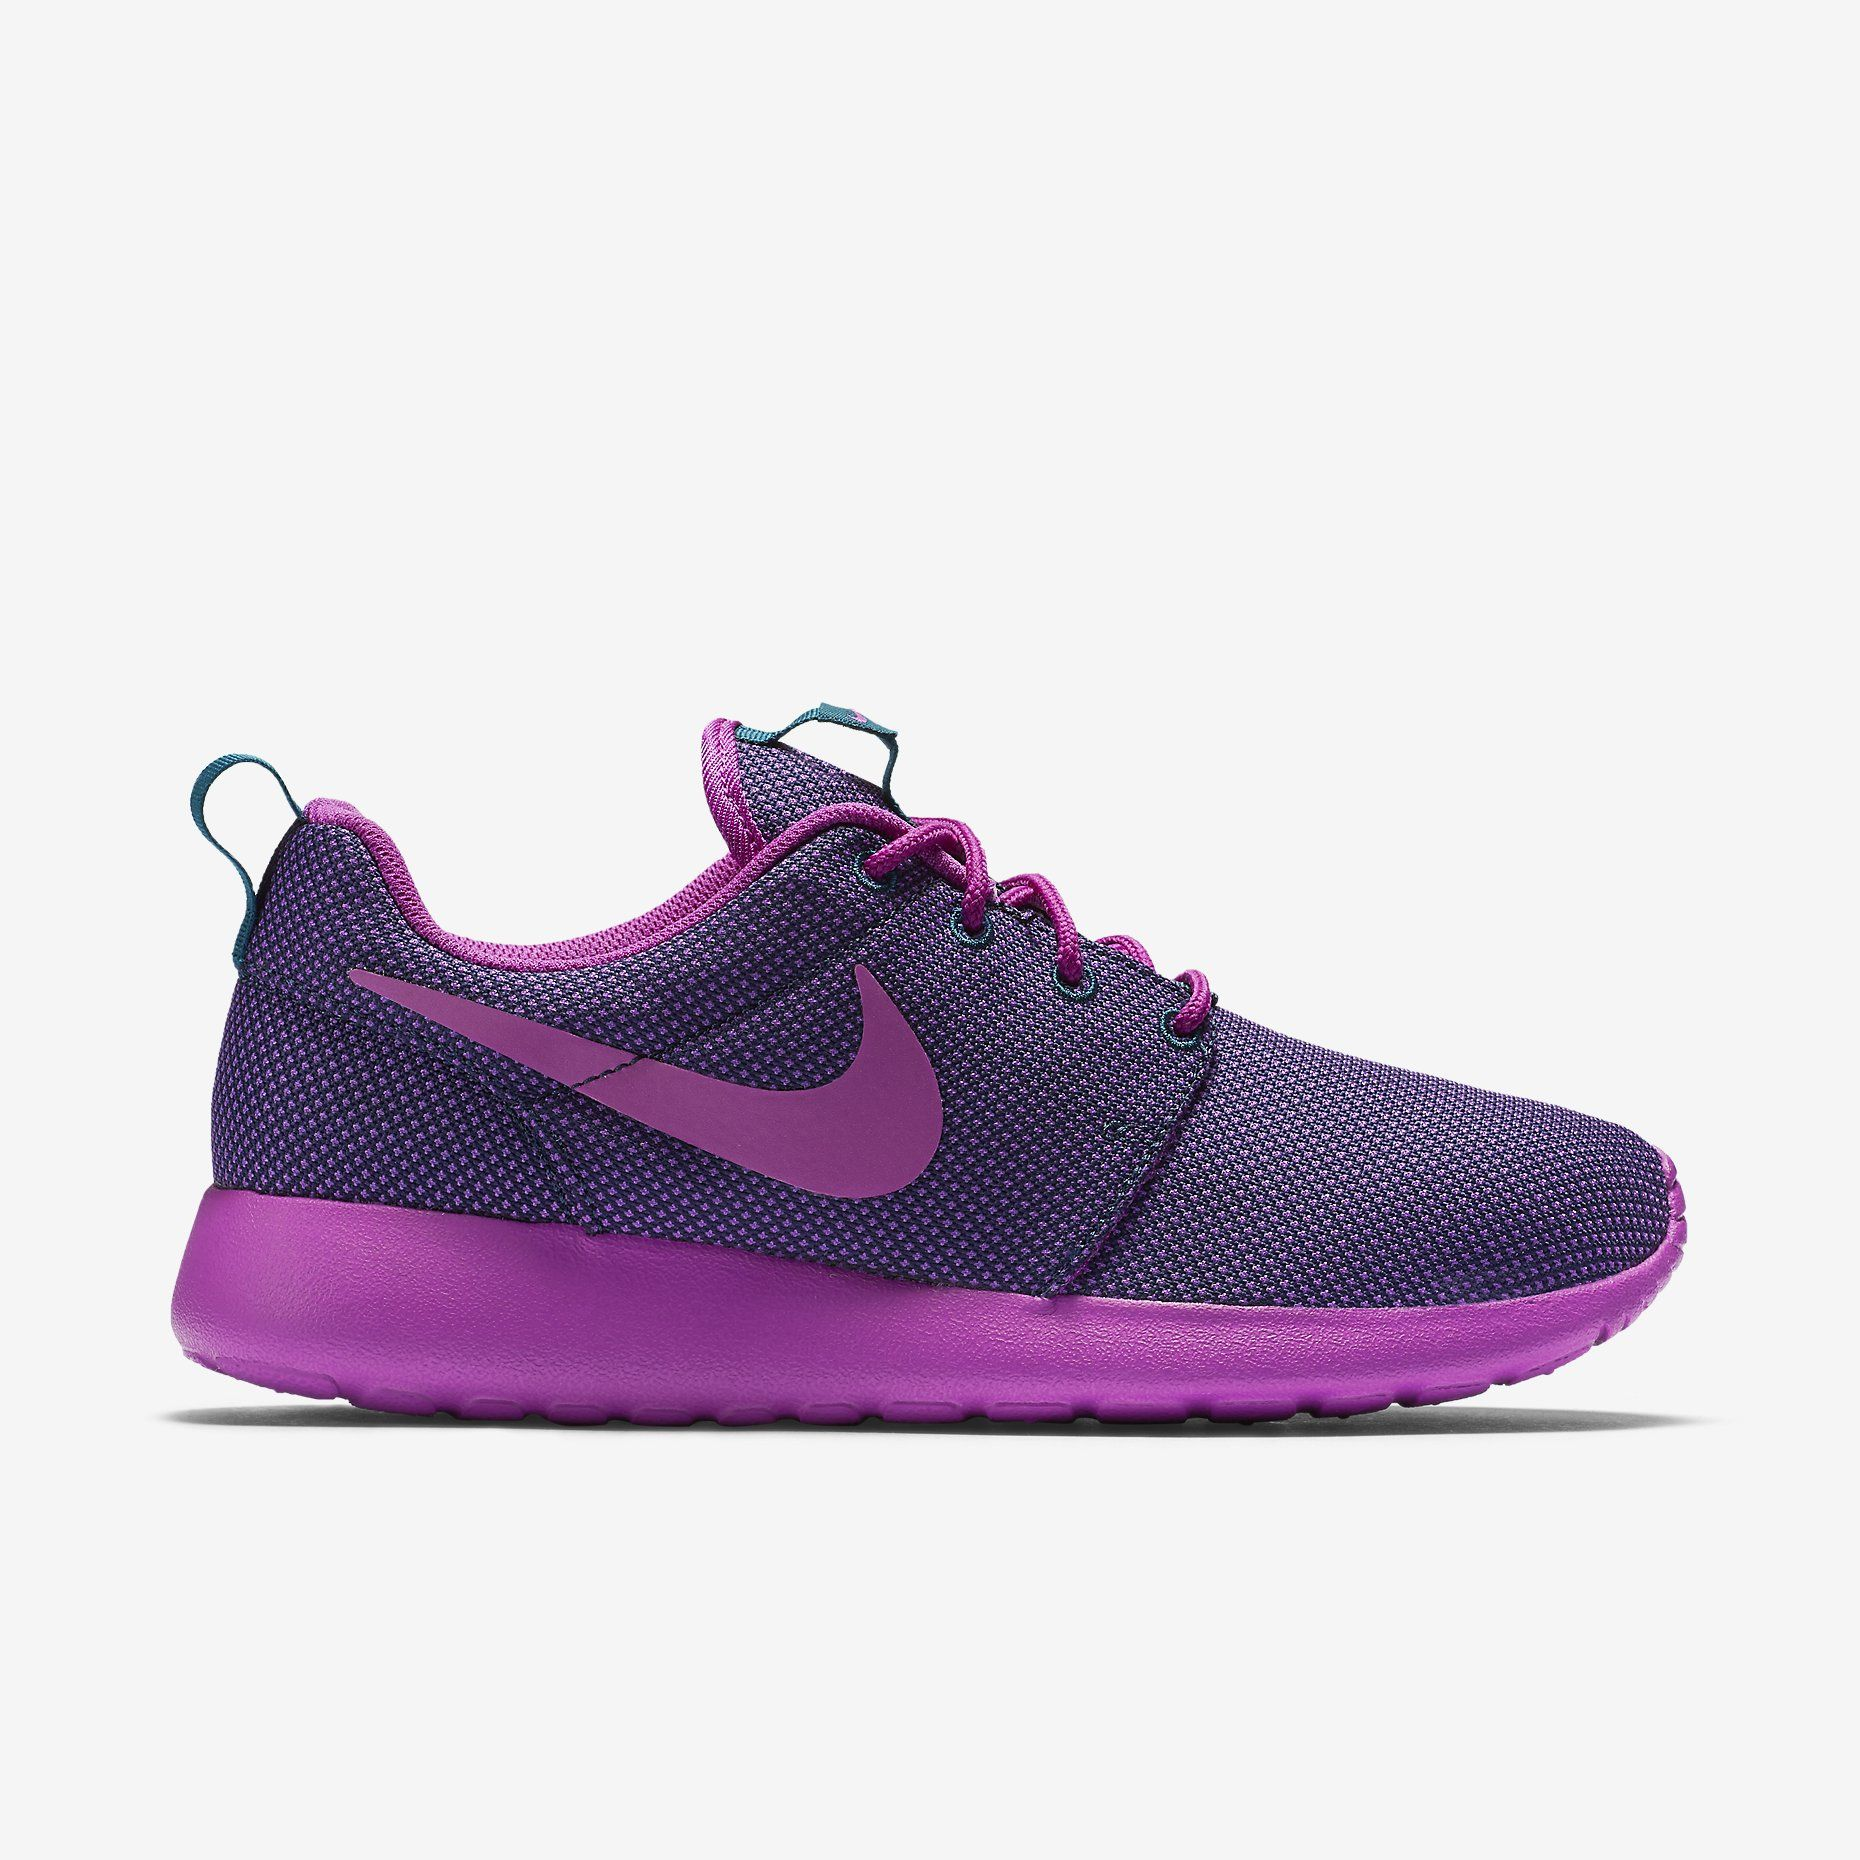 buy popular 1b3b8 70372 Nike Roshe One Women s Shoe, Midnight Teal Dark Grey Vivid Purple